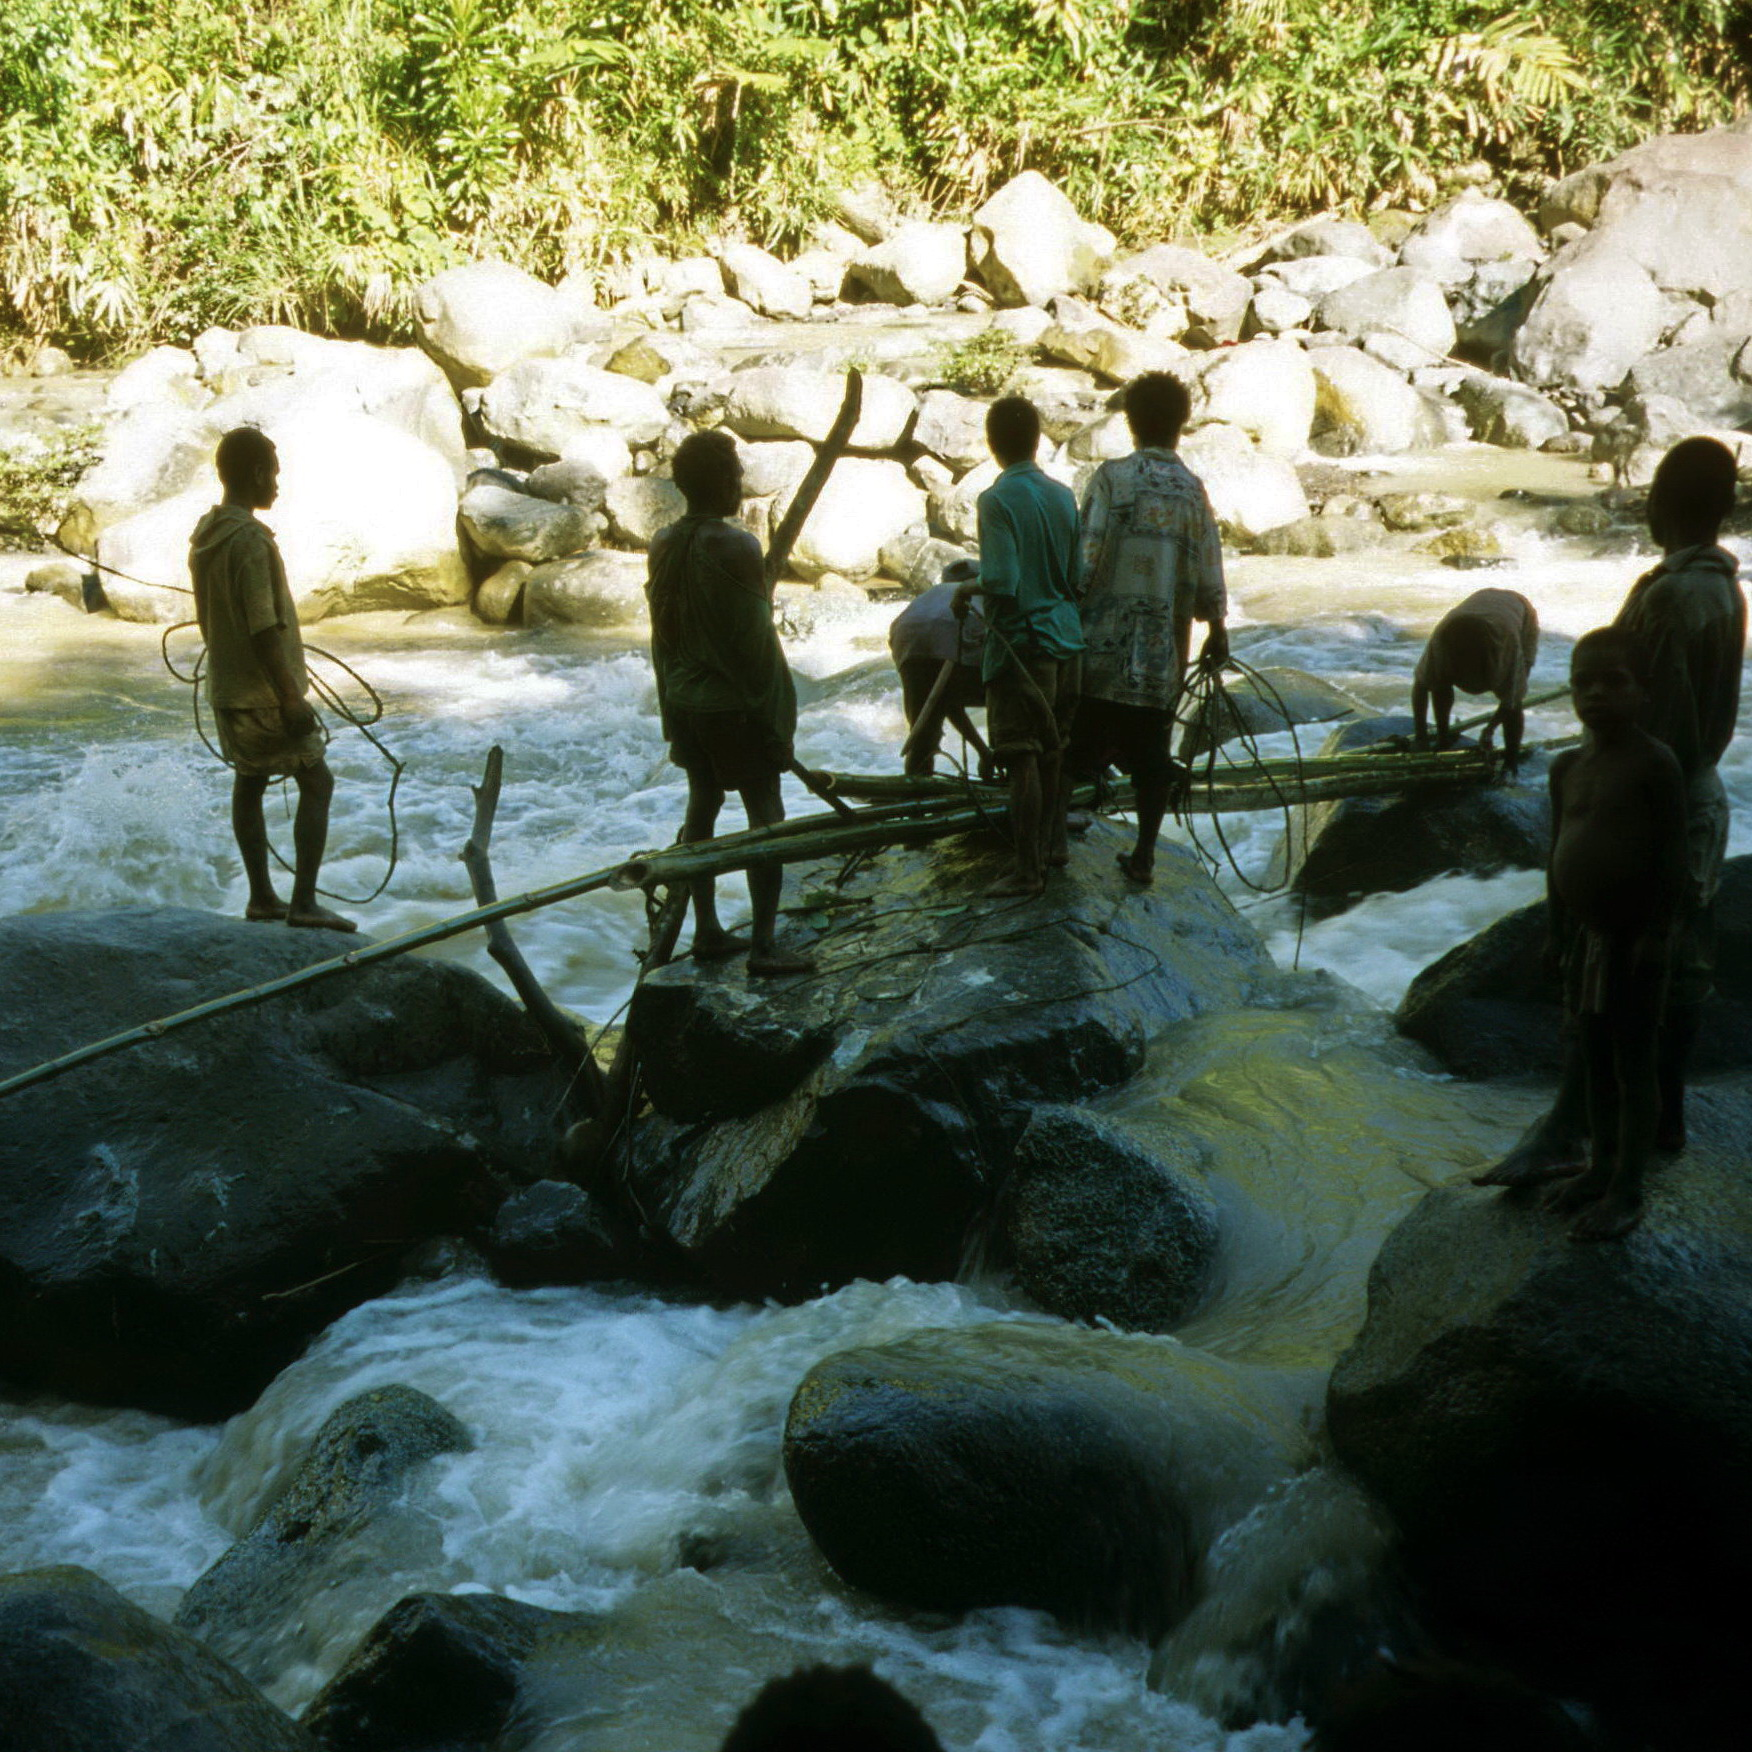 Where there is no bridge, make one.  Hiring some local guys to put up a flimsy makeshift bridge across a small river.  It looks reasonably tame in the photo but as I recall we went to all that trouble because it was too dangerous to cross on foot.